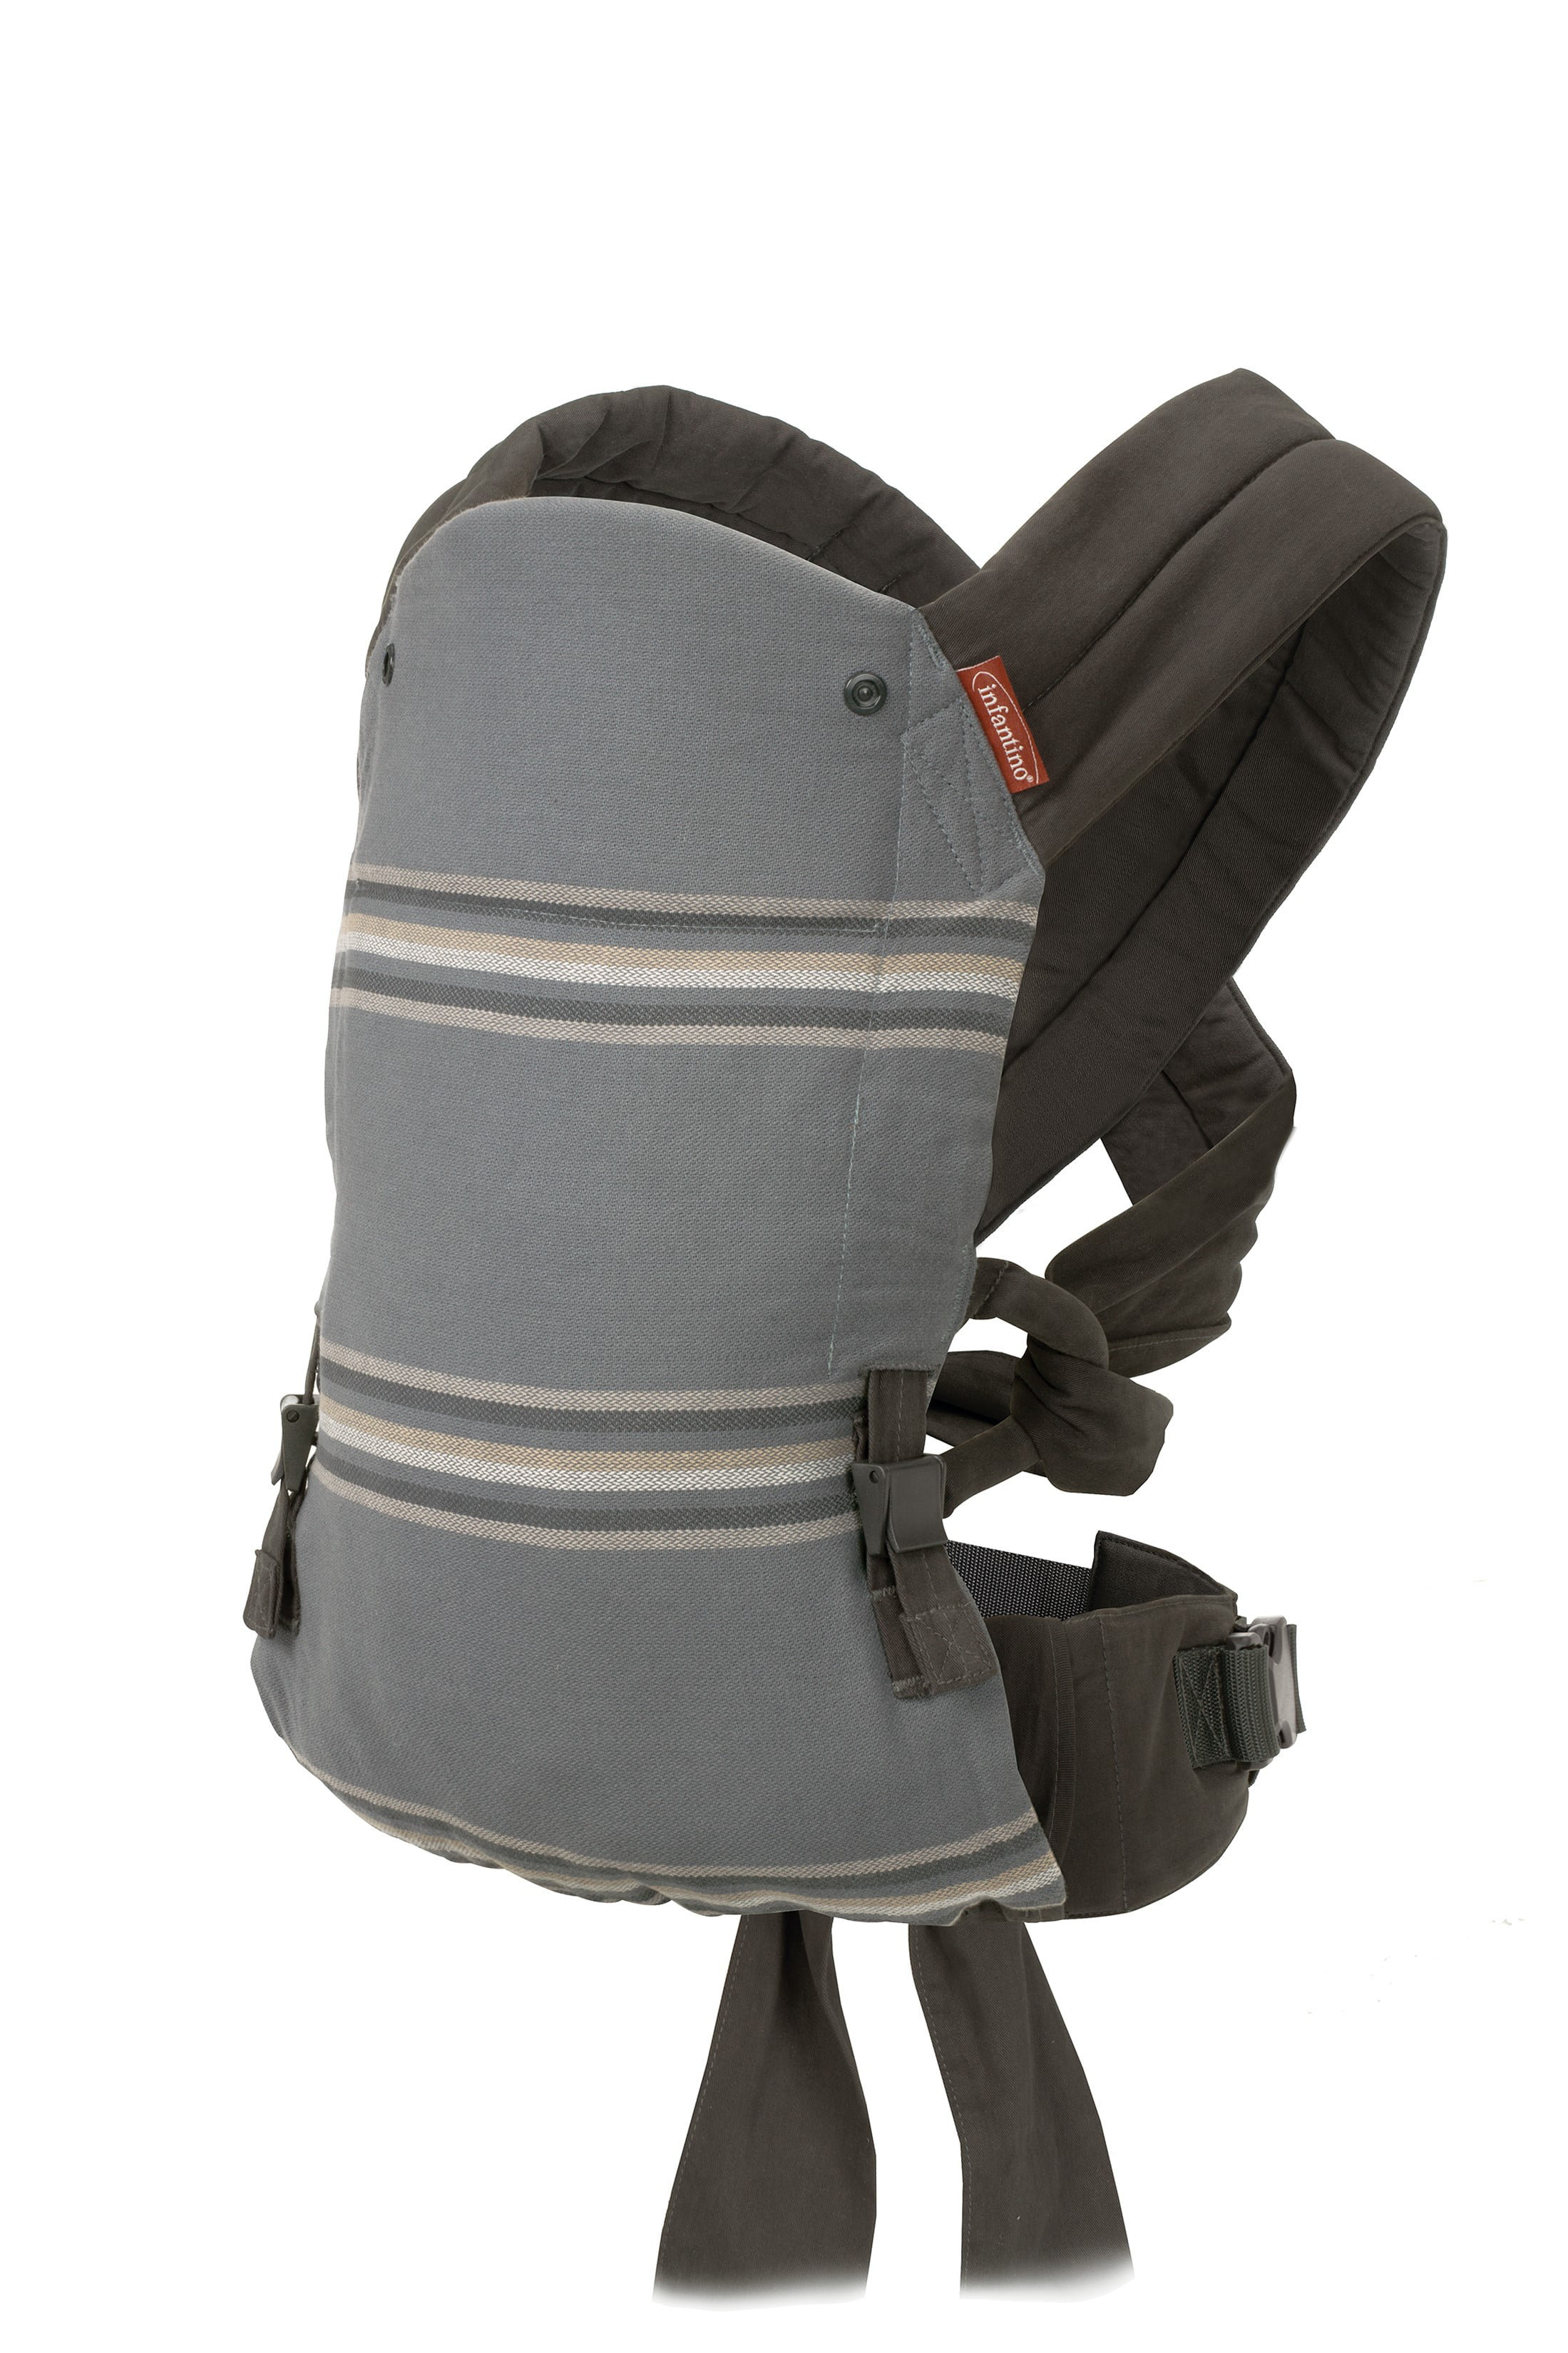 Infantino Close Ties Natural Fit Carrier Walmart